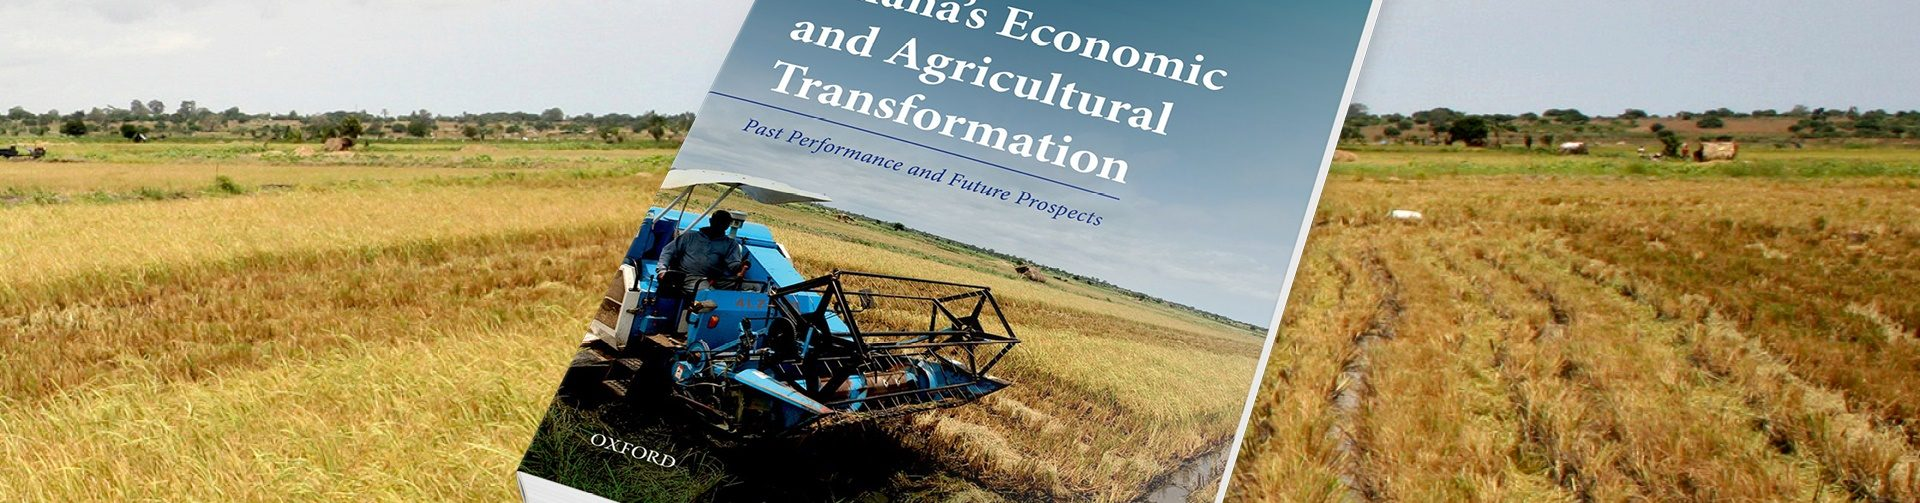 Ghana's economic and agricultural transformation: Past performance and future prospects